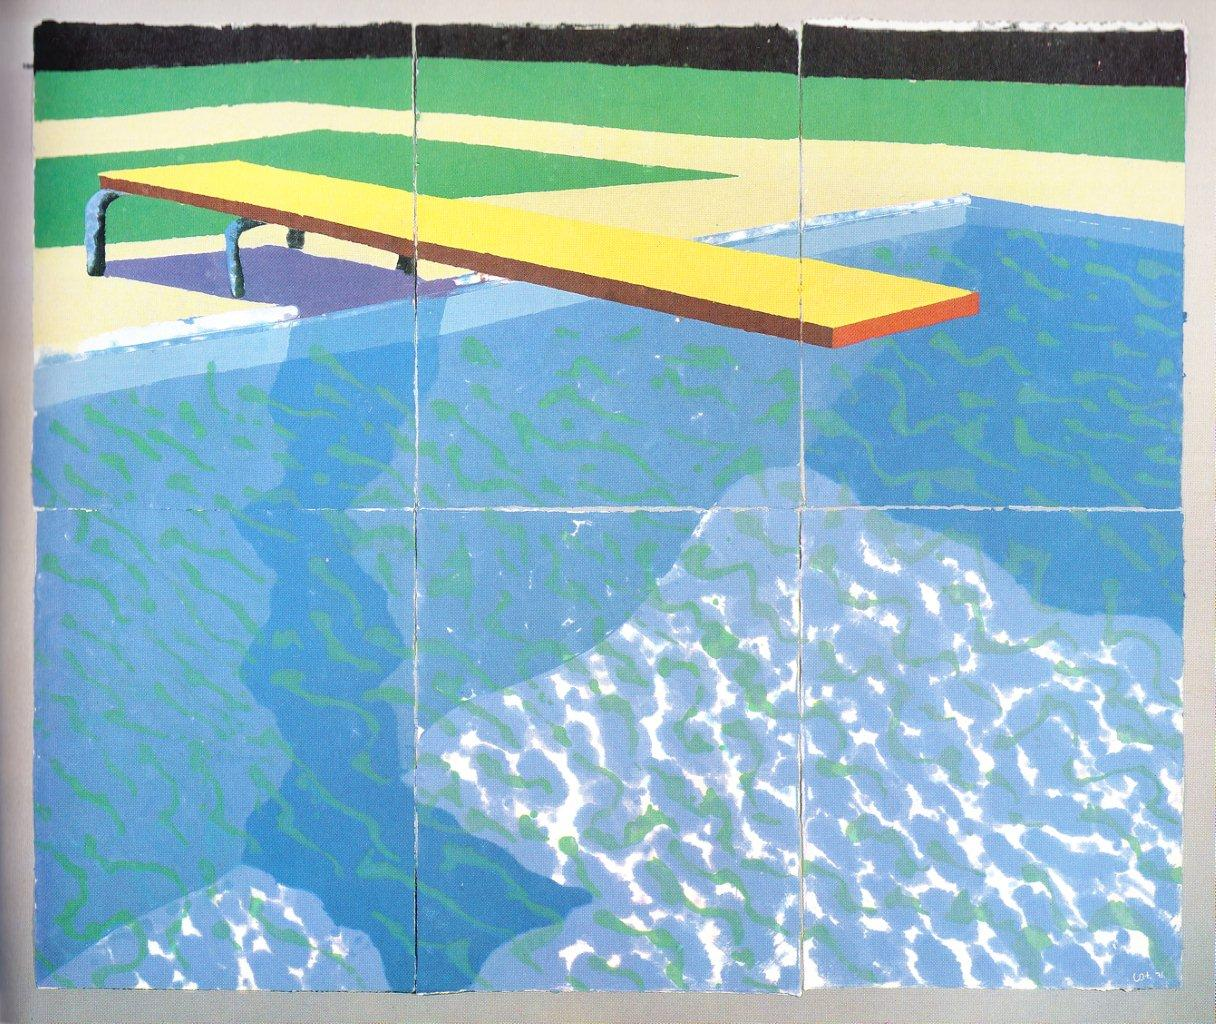 David Hockney - Board with Stillwater on Blue 1978